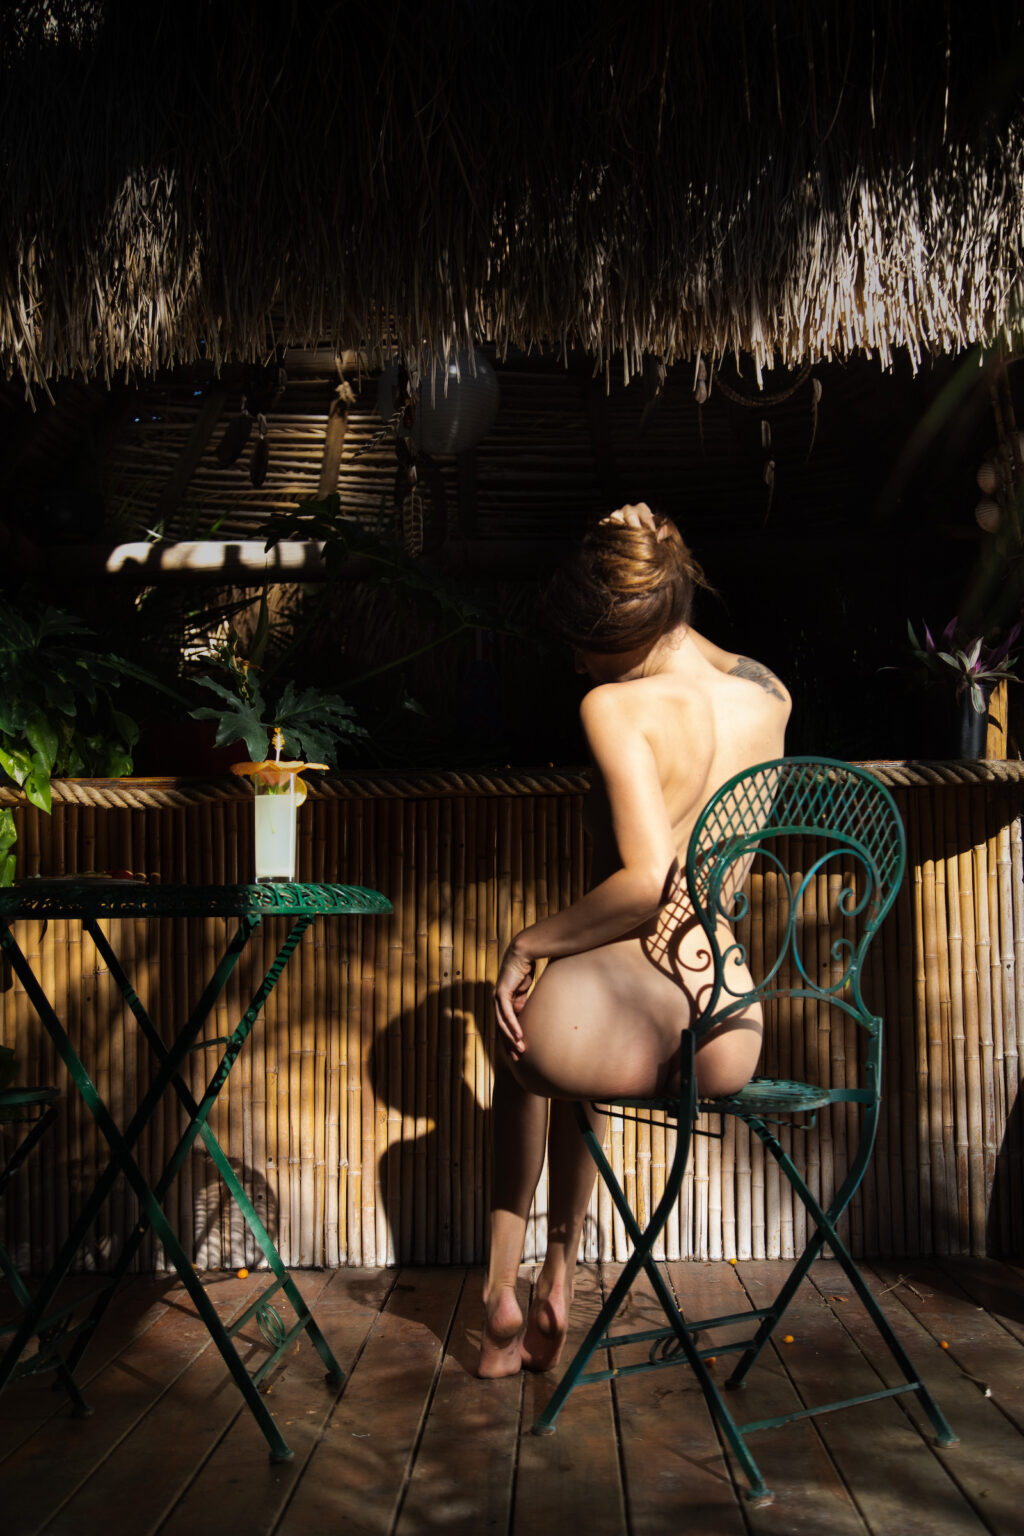 fine art nude photo with light and shadow in a tropical setting